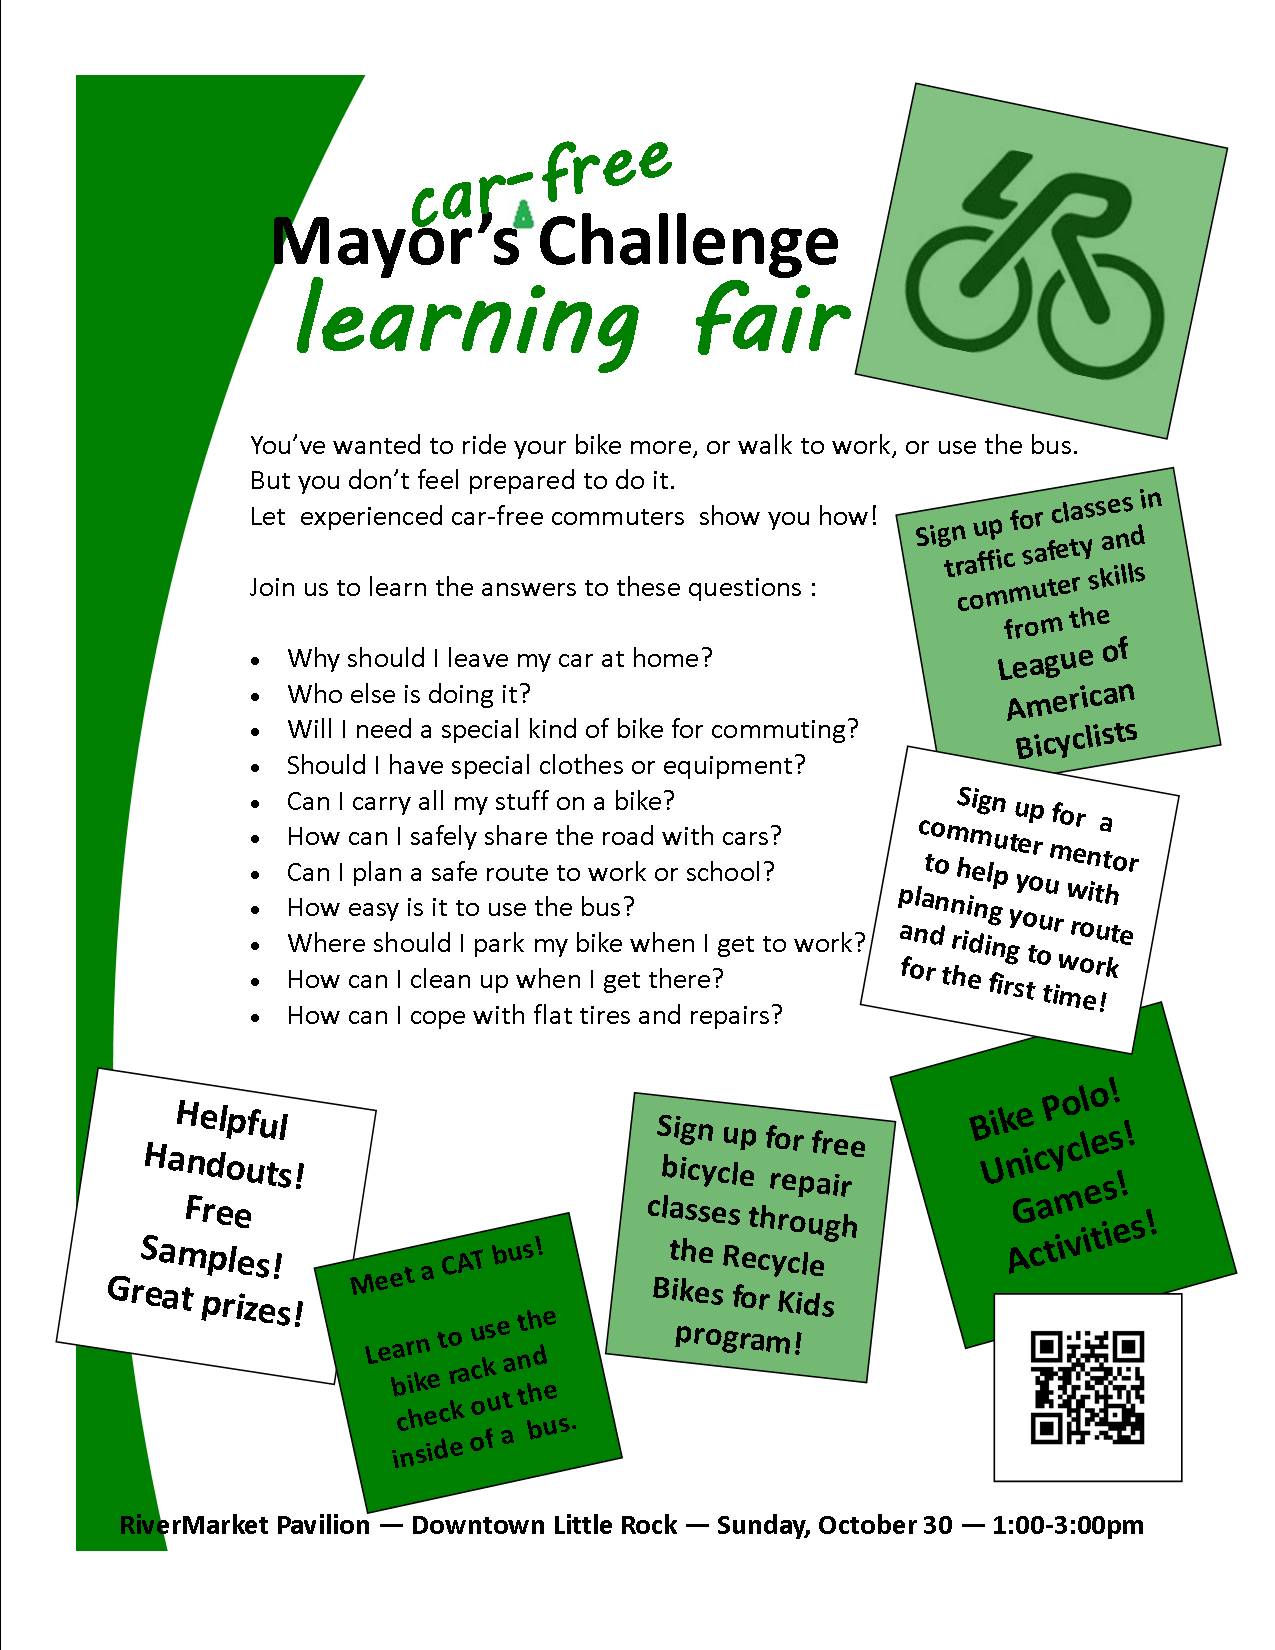 Mayor's Car-Free Challenge Learning Fair